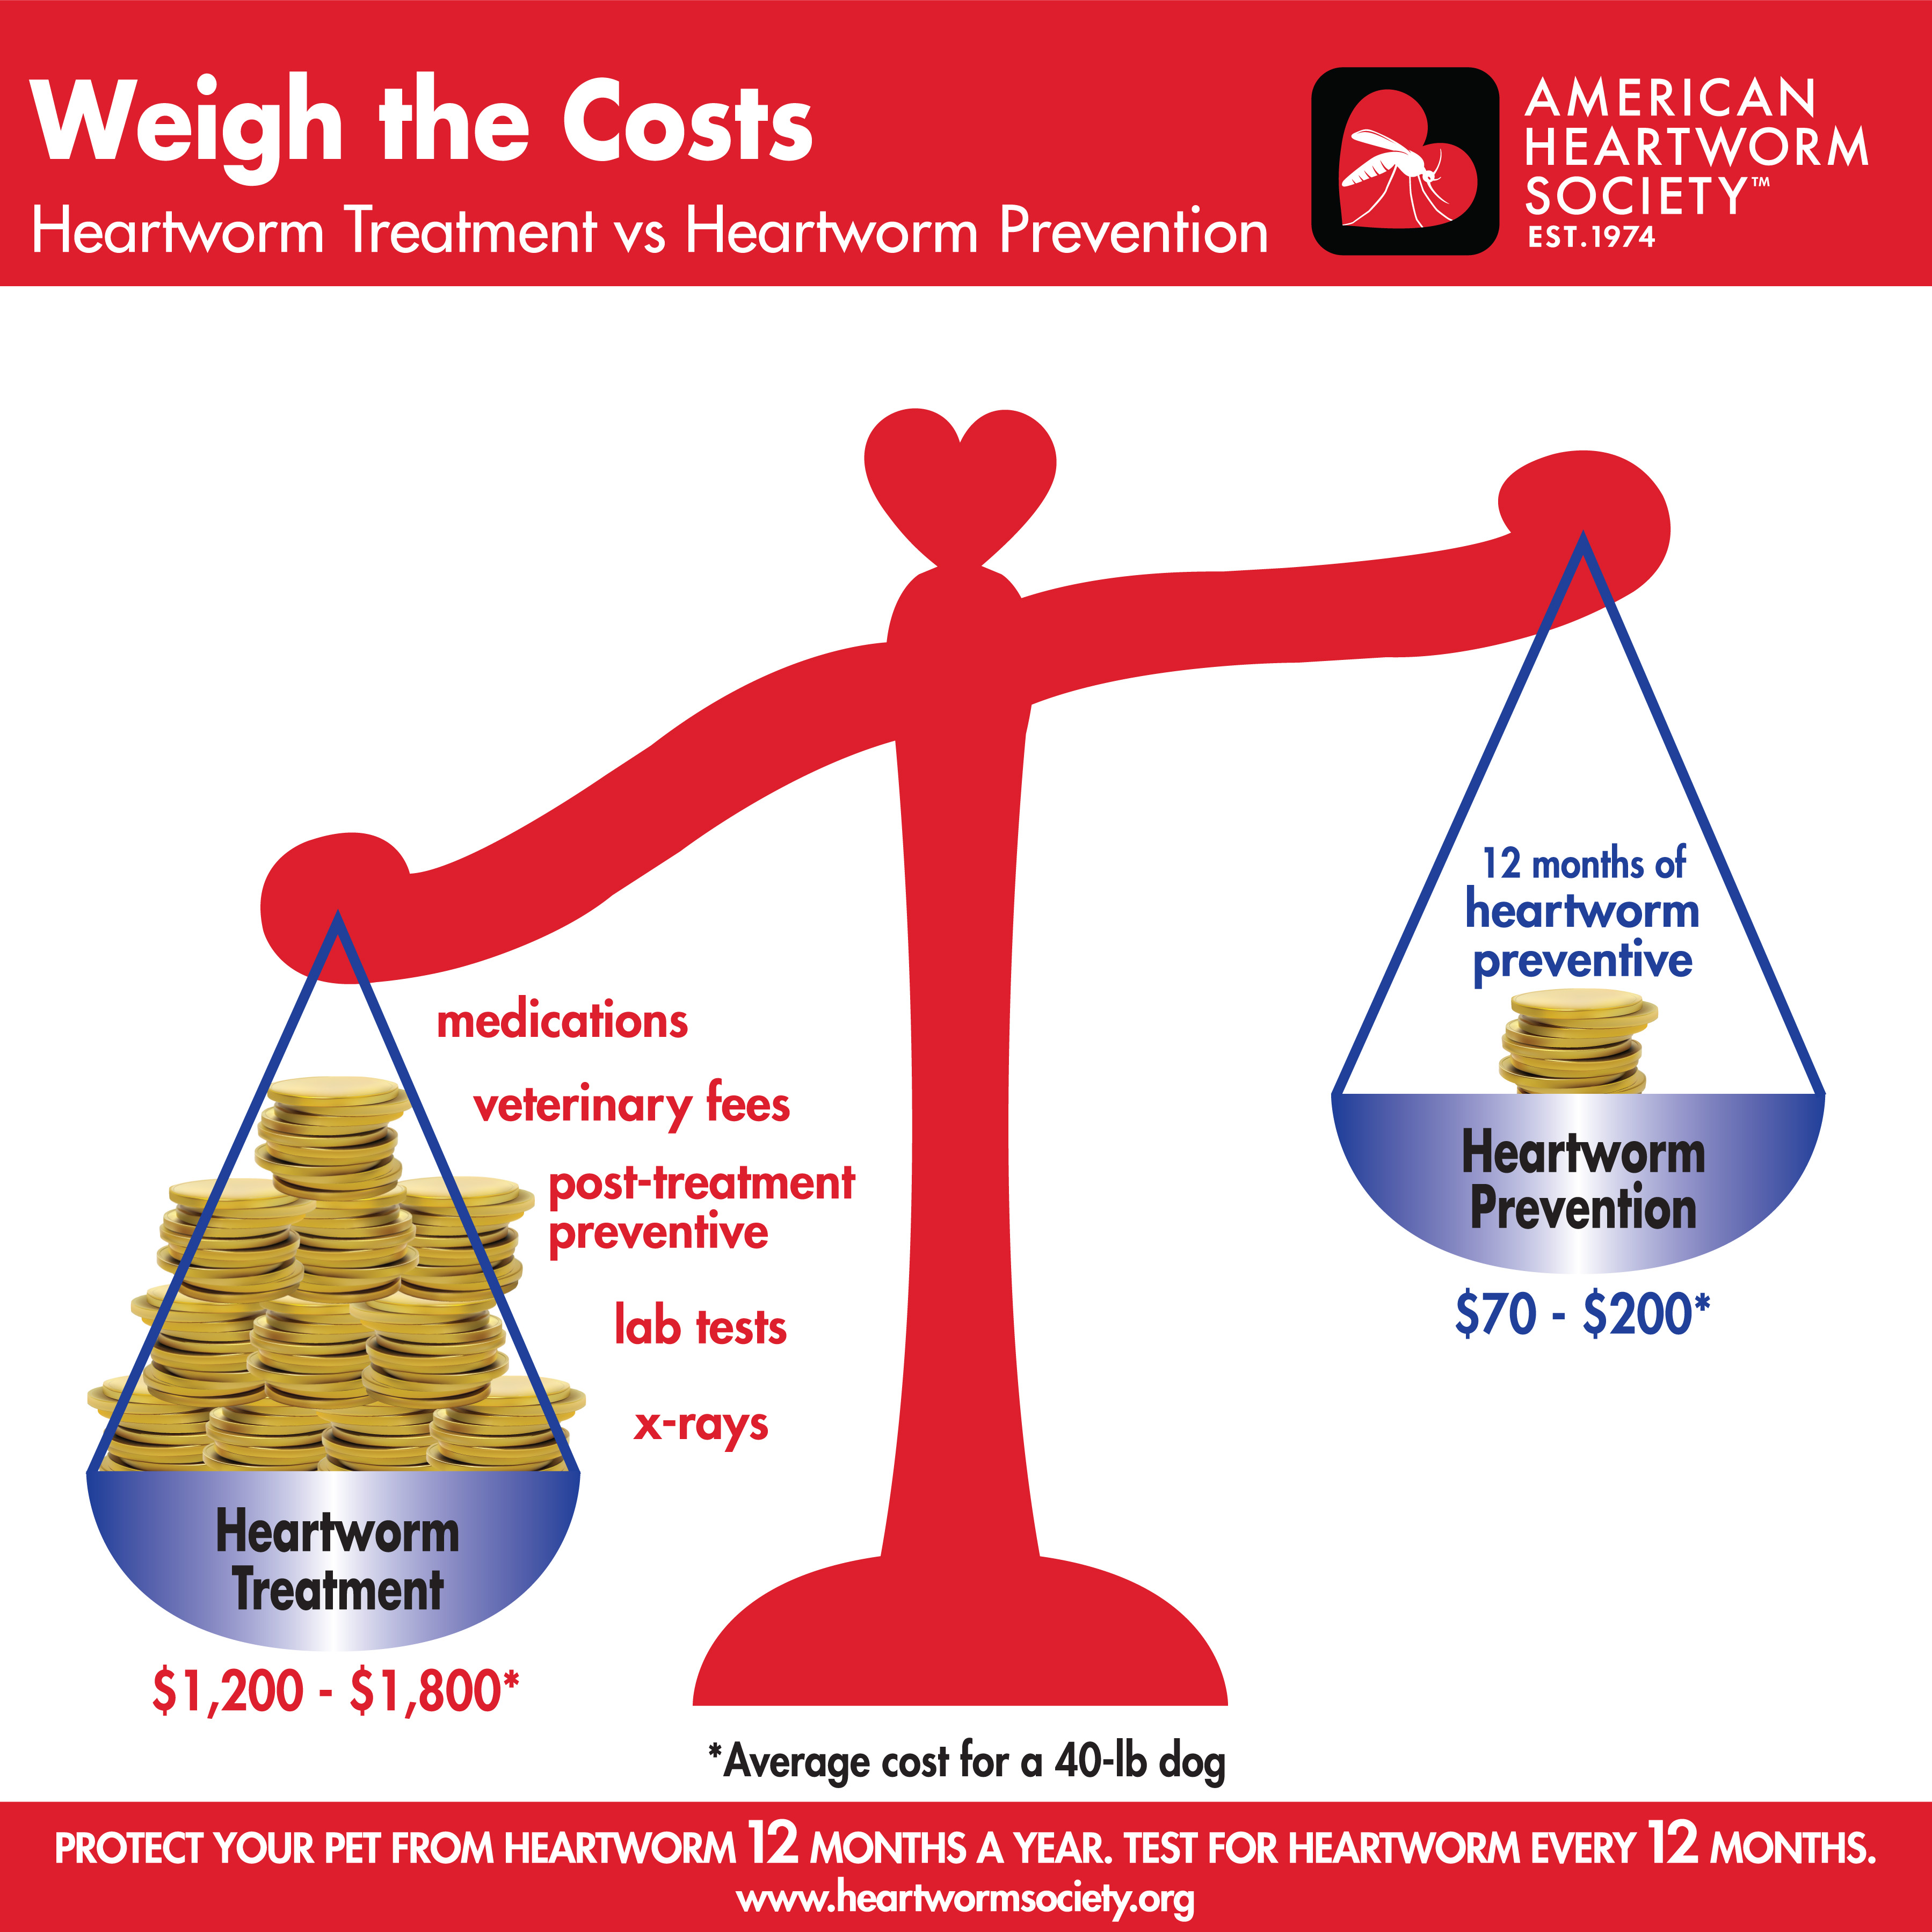 Weigh the costs